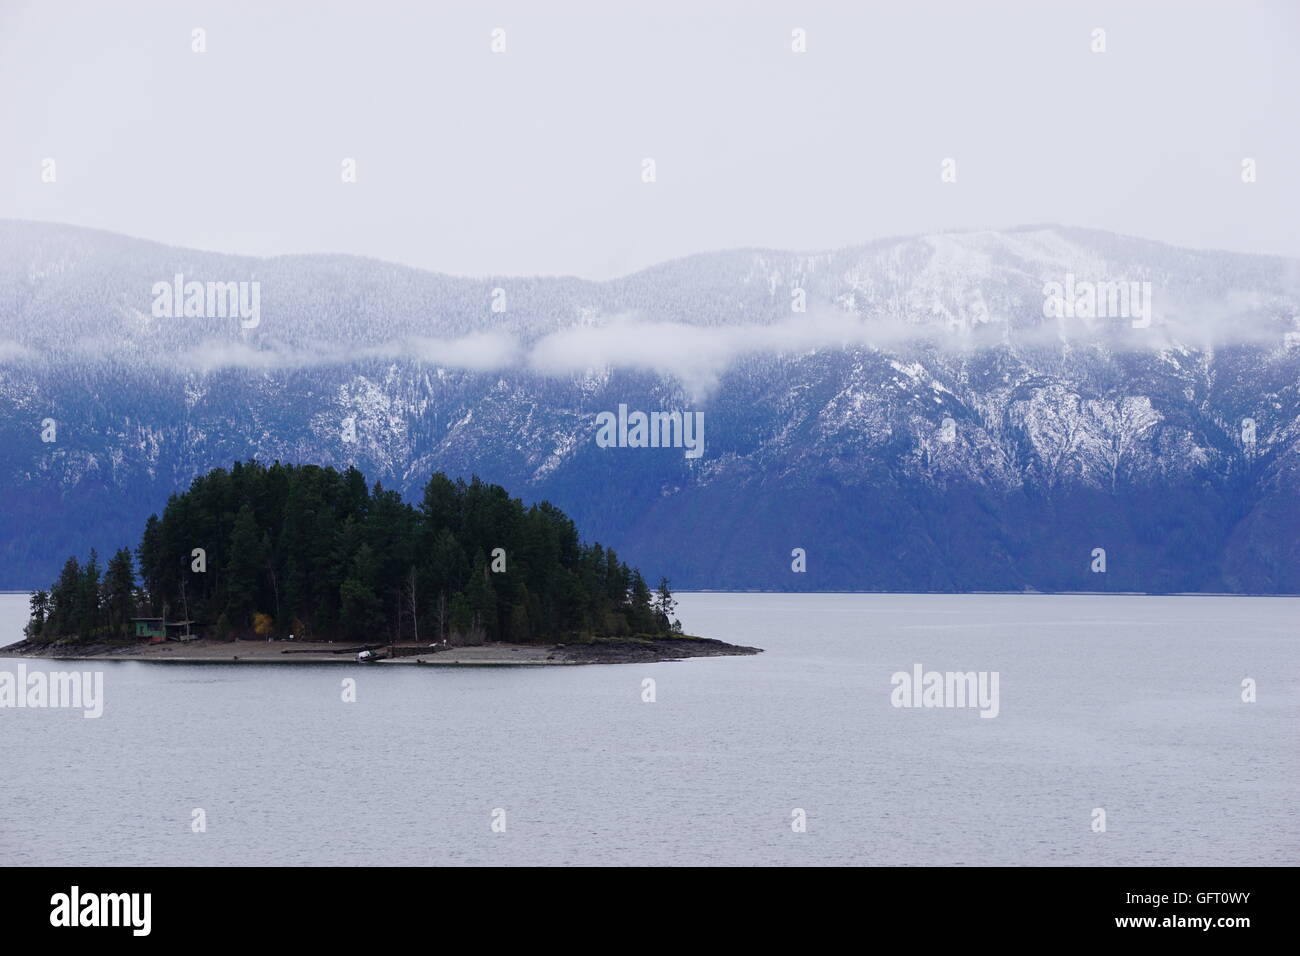 Island in Lake Pend Oreille with snow on mountains in background and low clouds - Stock Image